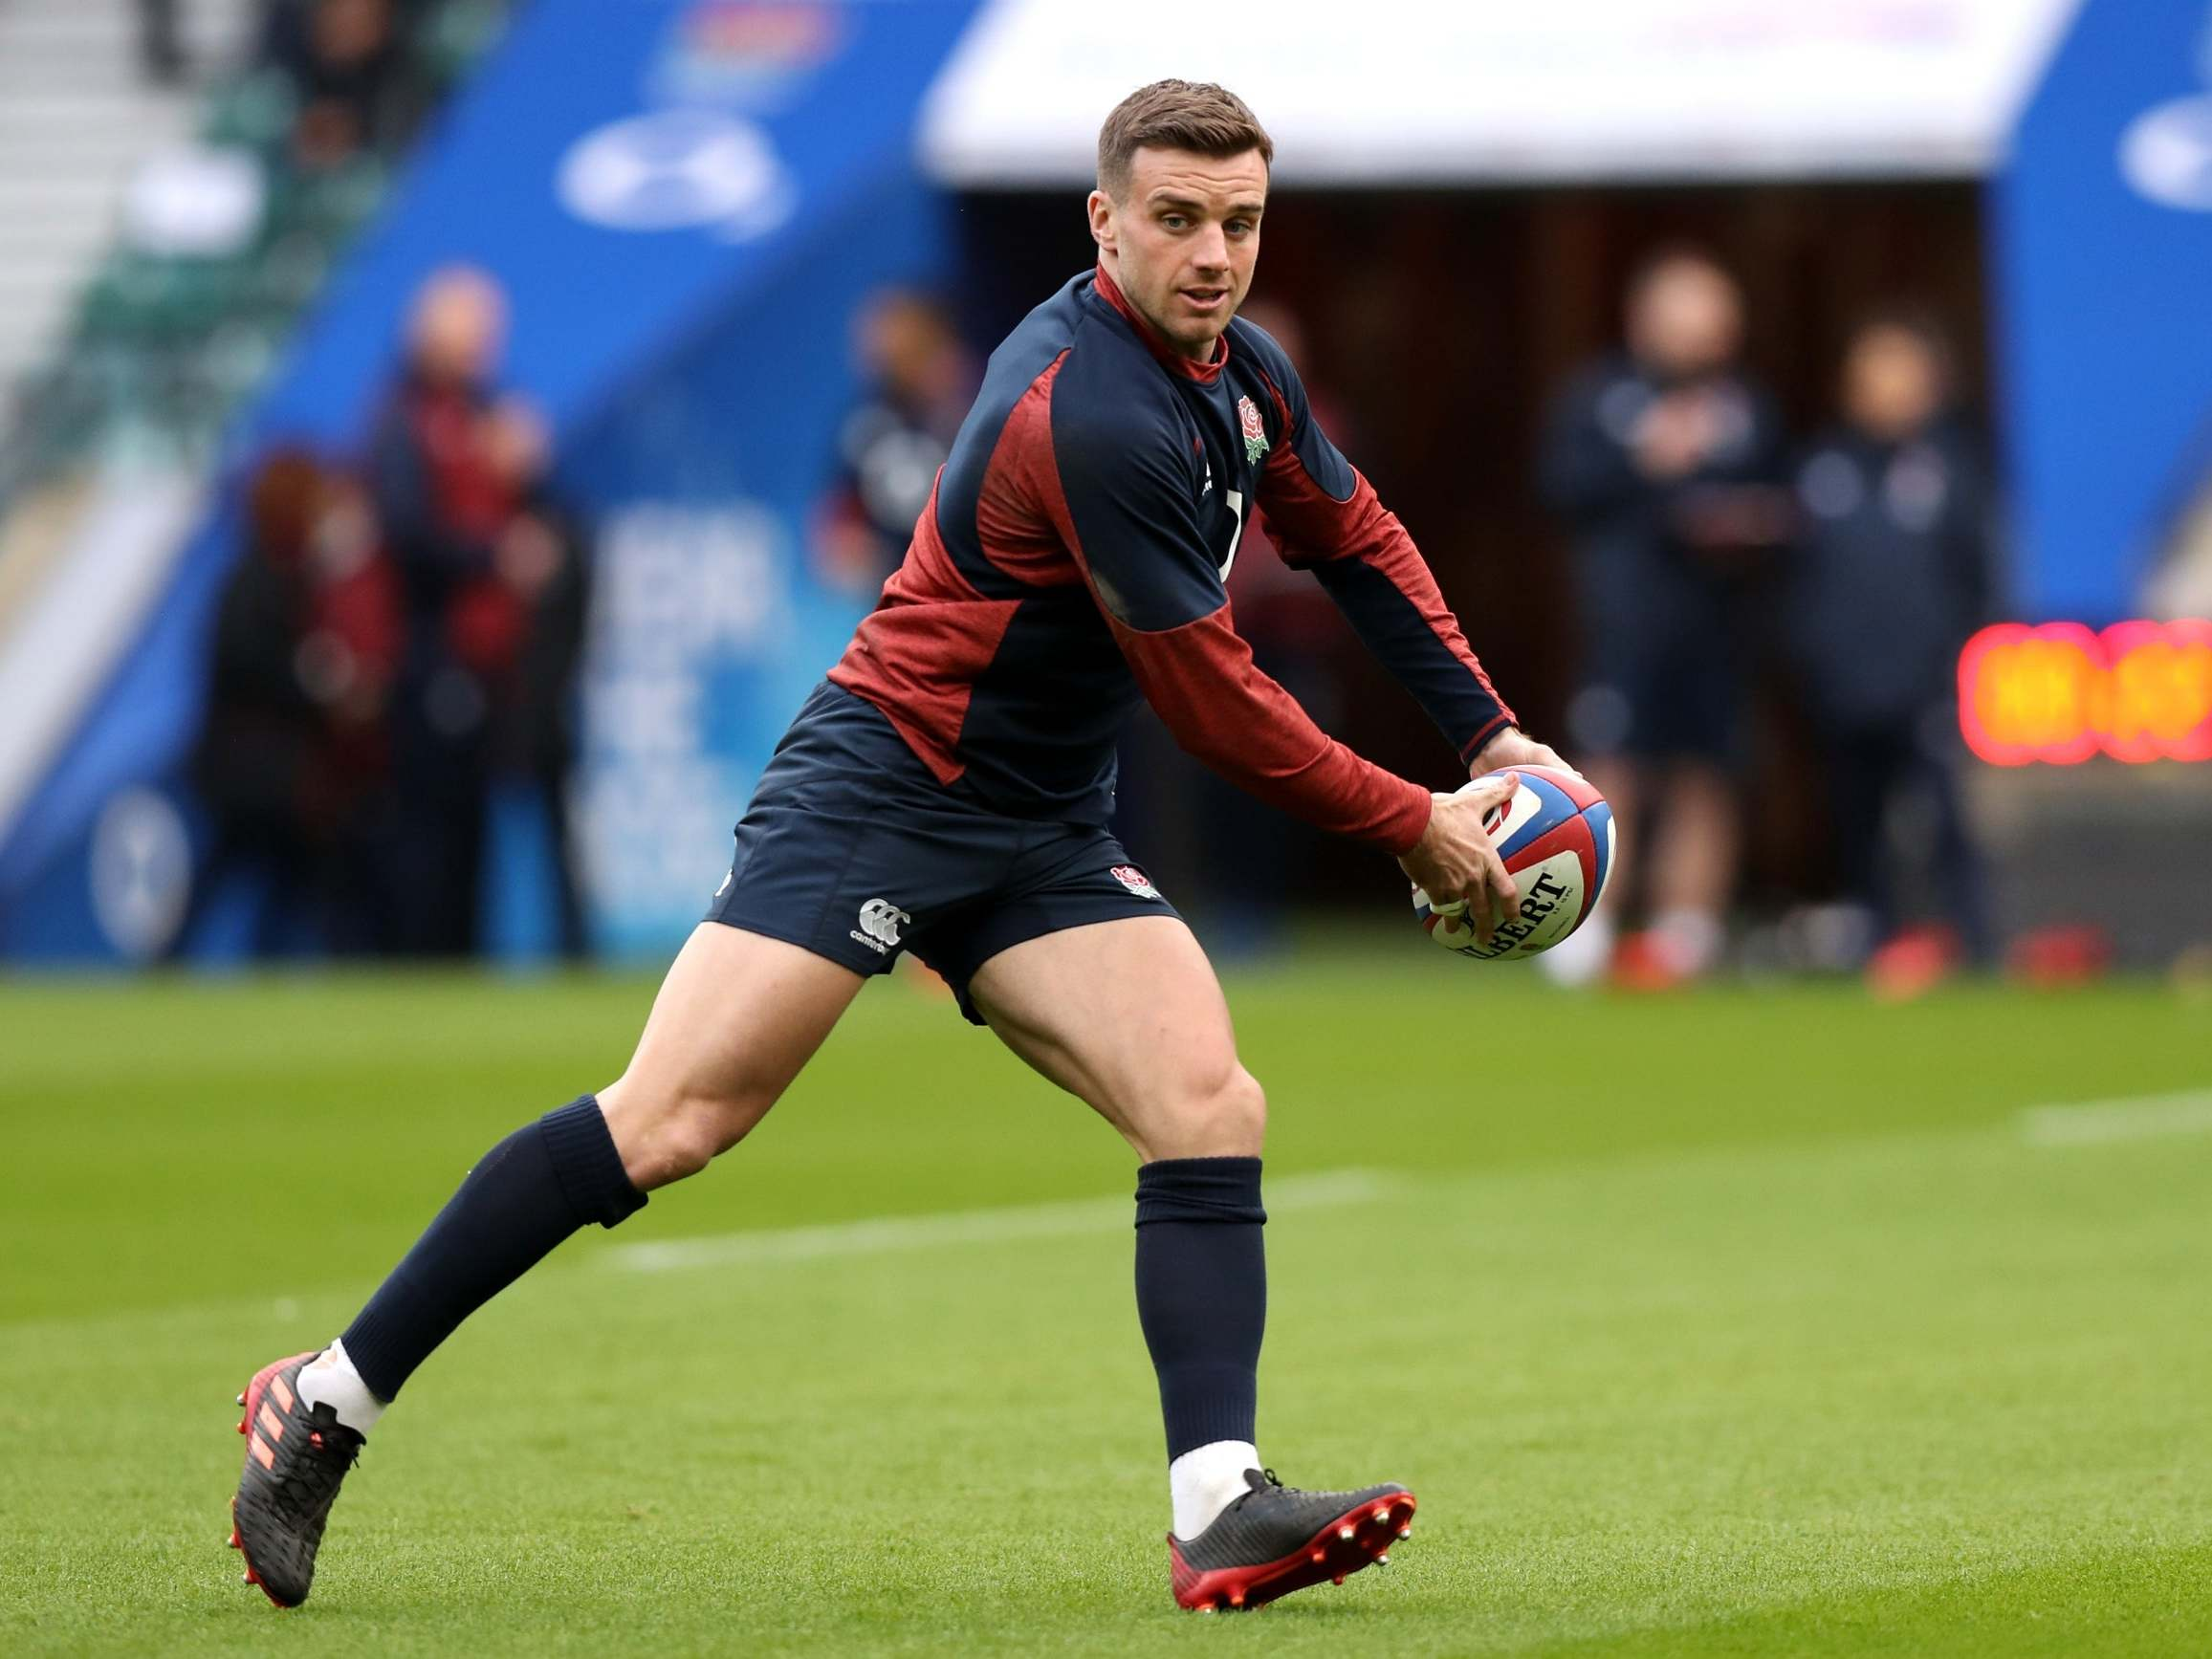 England tapping into pain of 2018 defeat in bid to beat Ireland, says George Ford